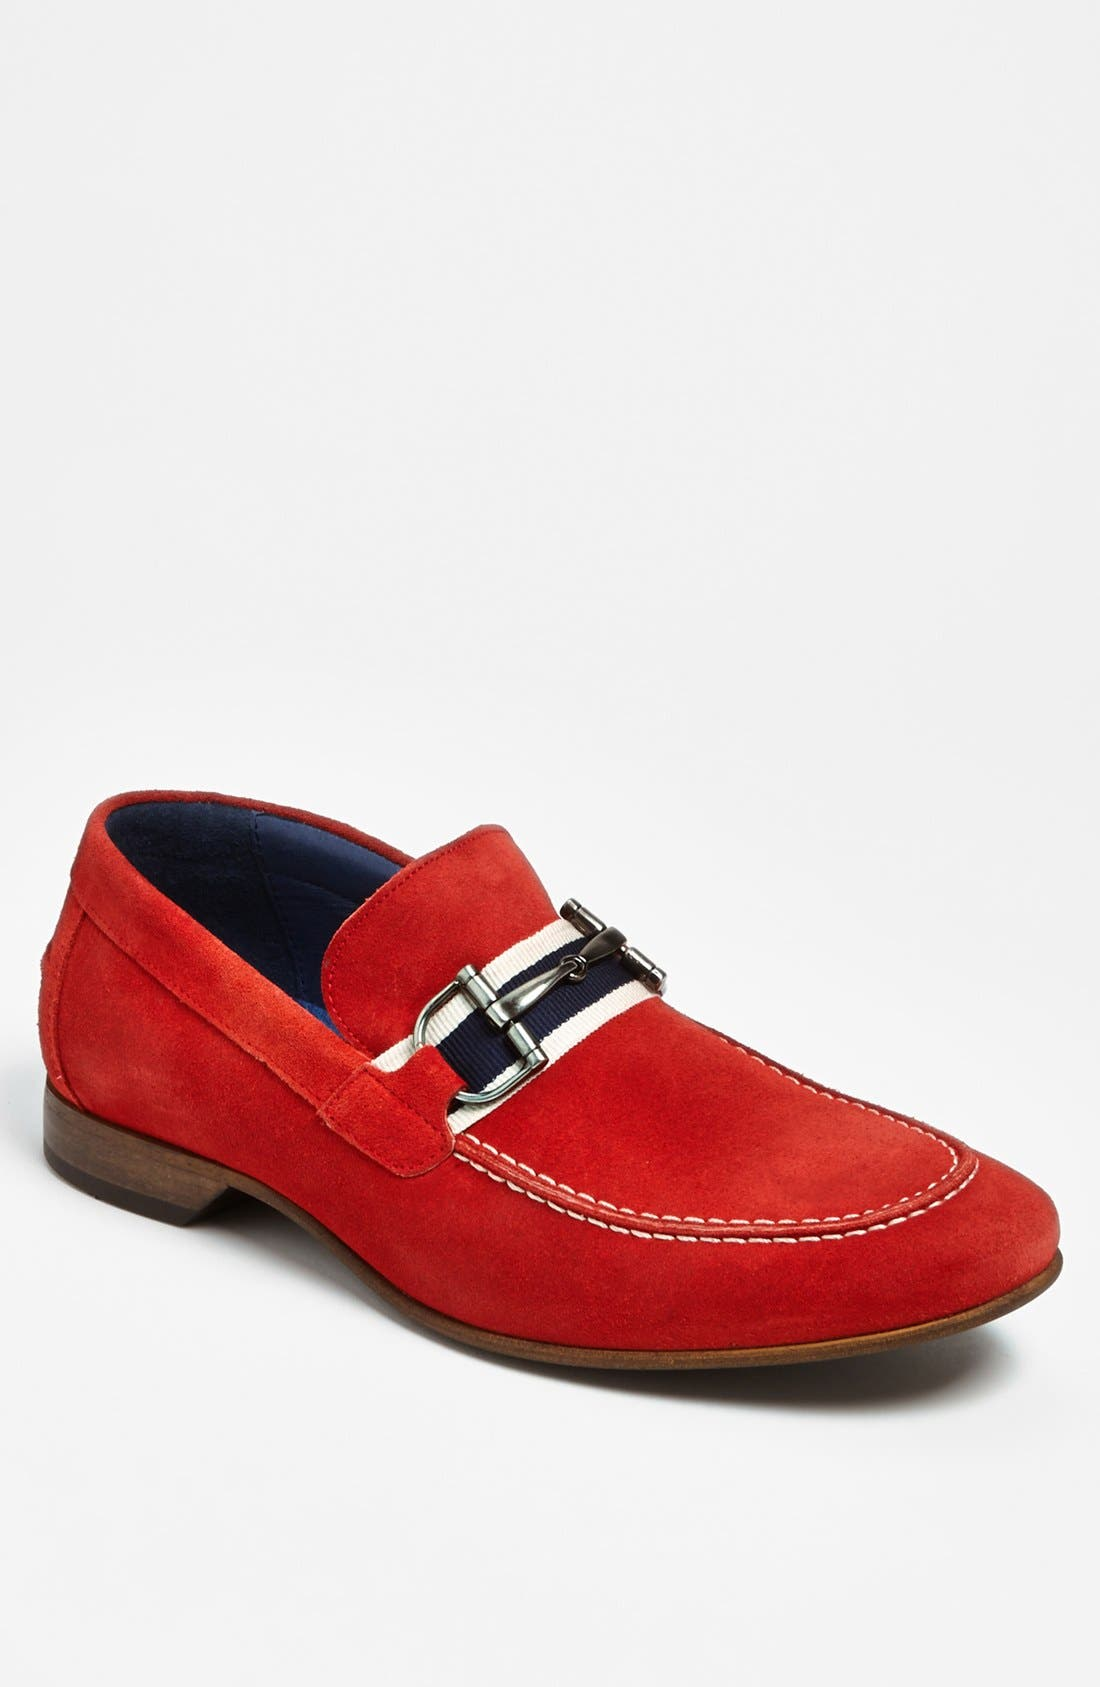 Main Image - Kenneth Cole Reaction 'Roof Top' Bit Loafer